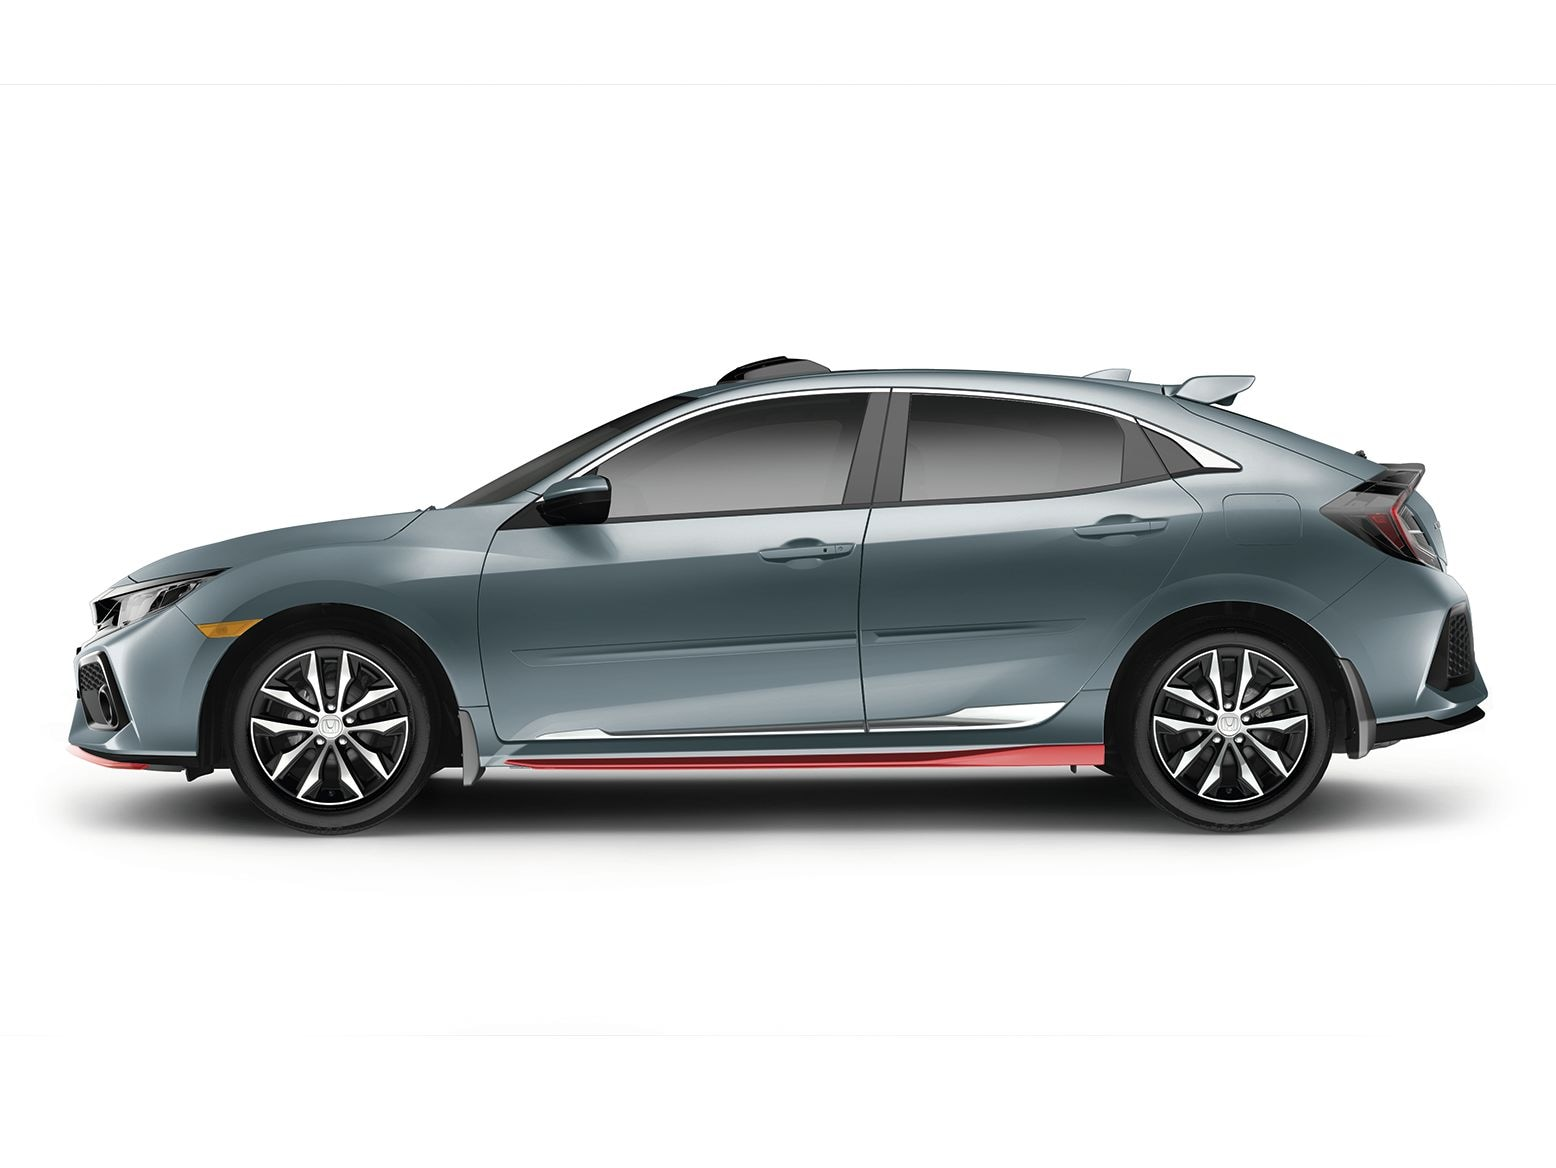 Honda Civic Wilmington Nc >> 2017 Civic Sedan Sleek And Sophisticated Honda | Upcomingcarshq.com